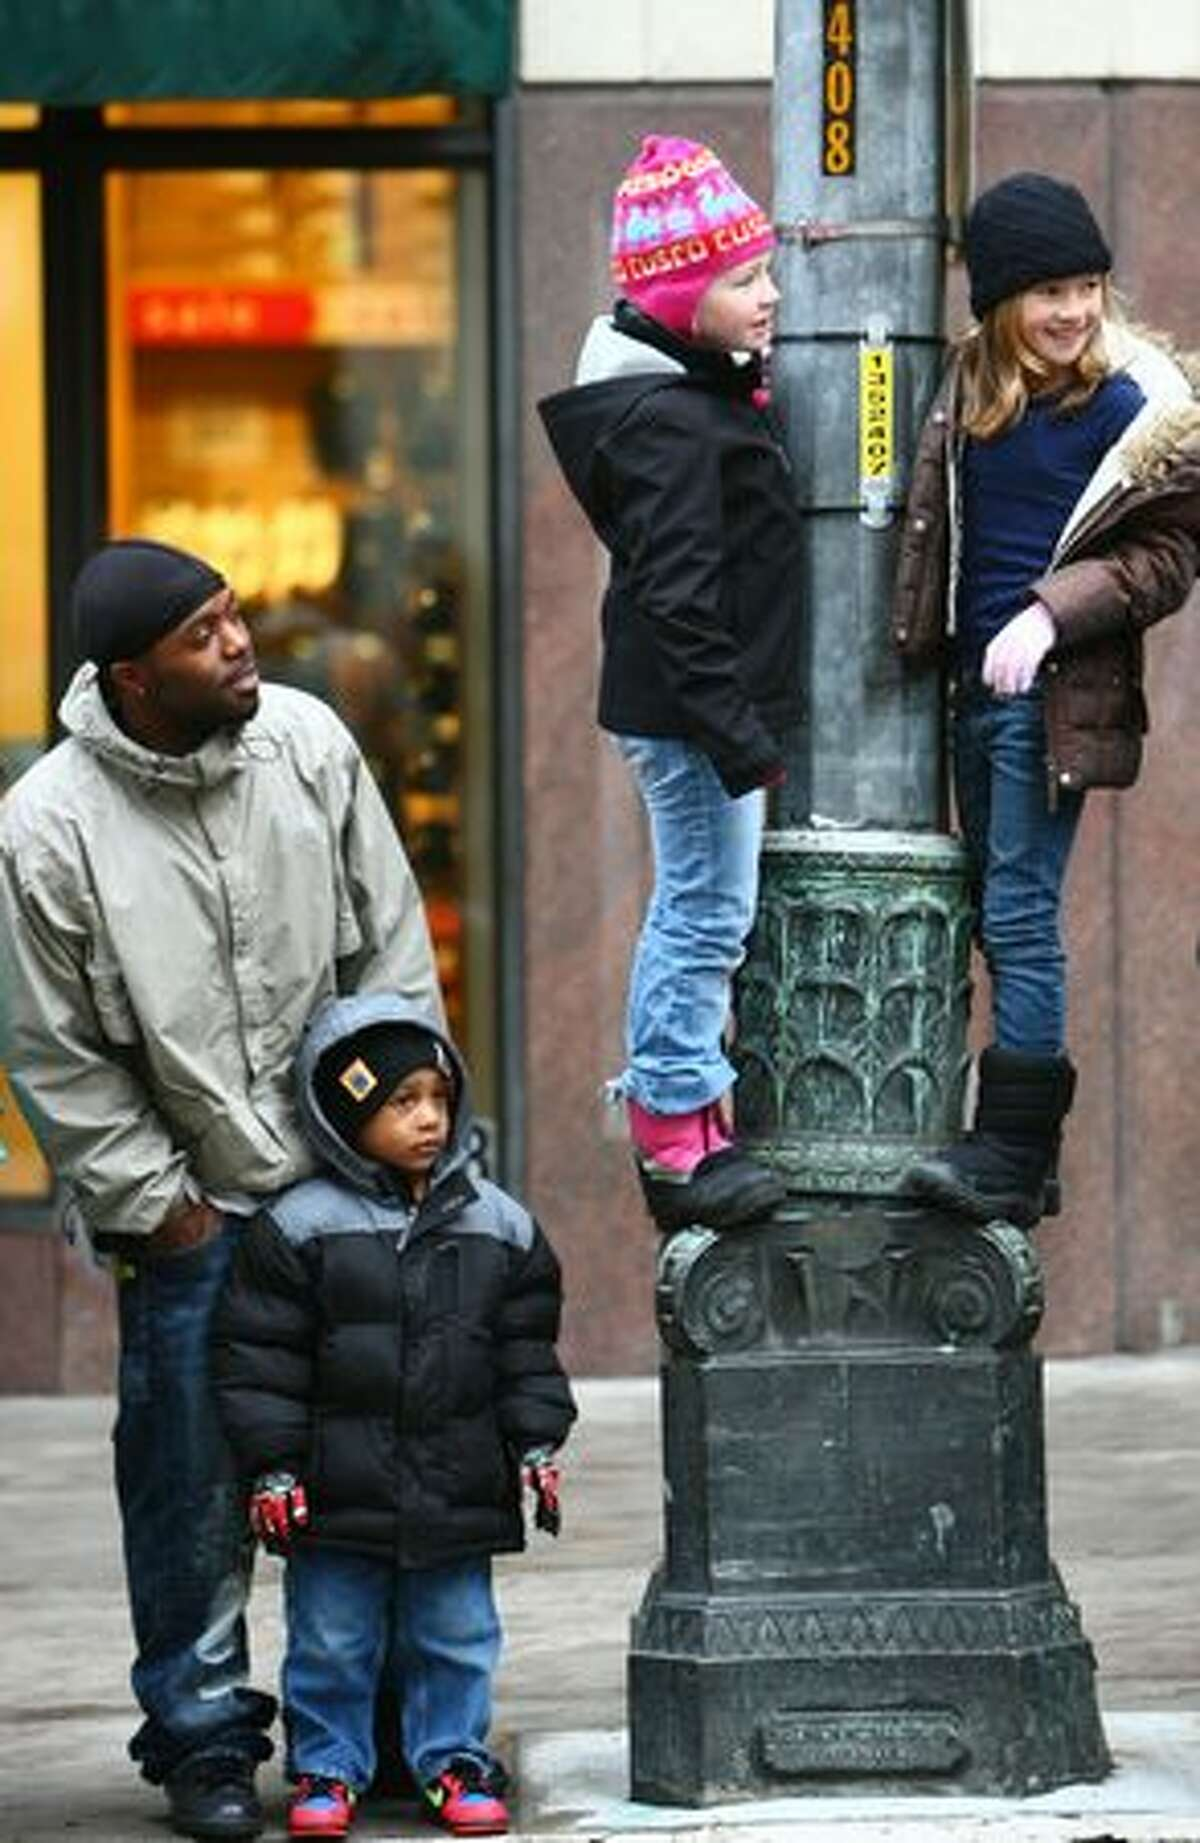 Spectators watch the Macy's Holiday Parade in downtown Seattle on Friday. Thousands came out for the annual event early Friday morning.